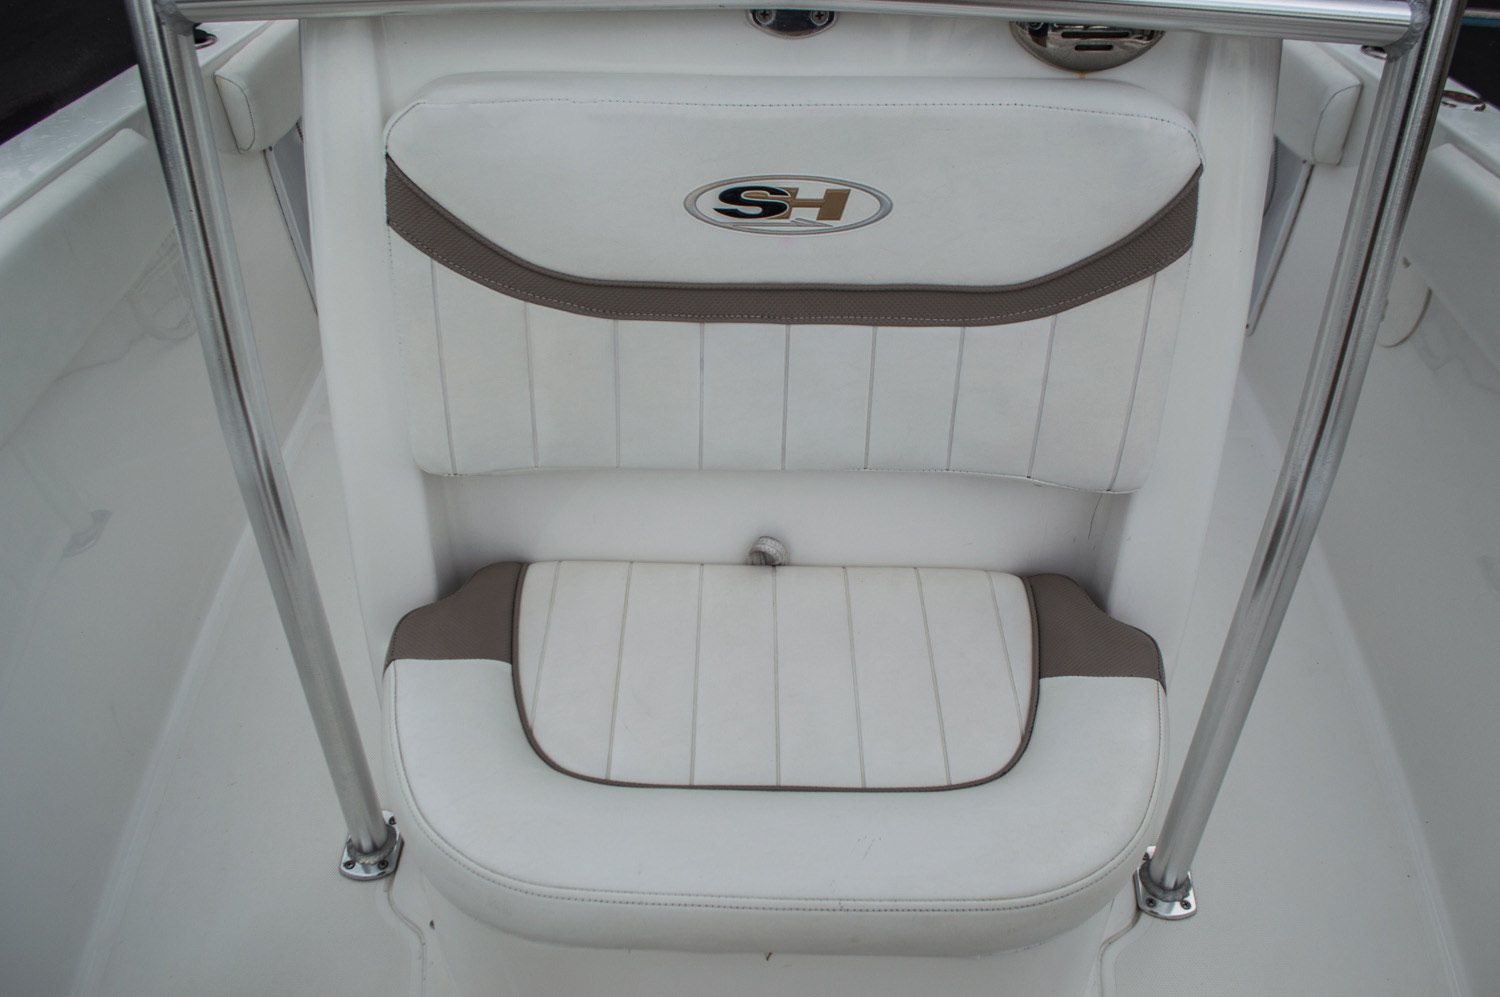 Thumbnail 20 for Used 2012 Sea Hunt 211 Ultra boat for sale in West Palm Beach, FL